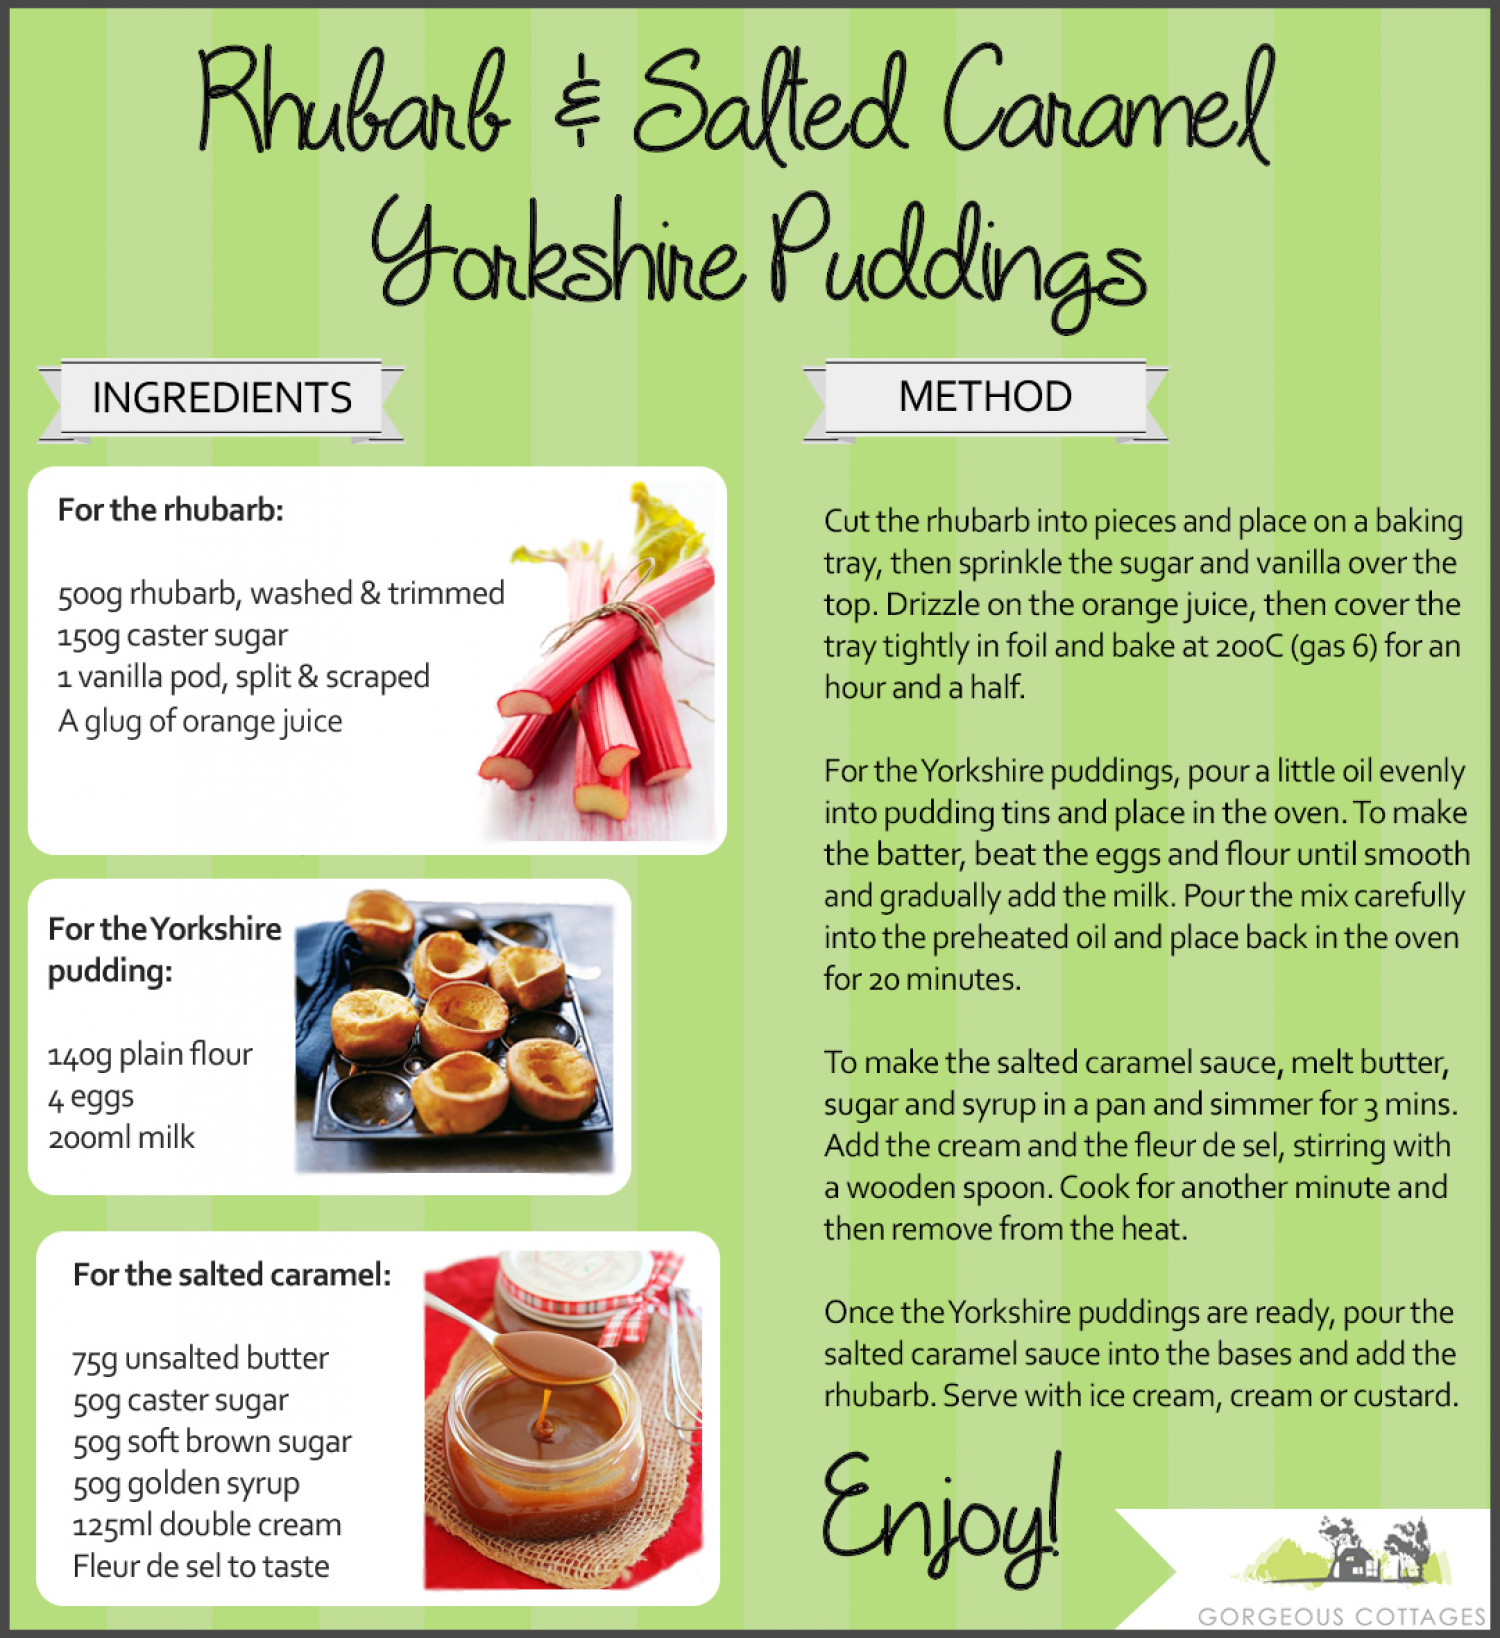 Rhubarb and Salted Caramel Yorkshire Puddings Infographic